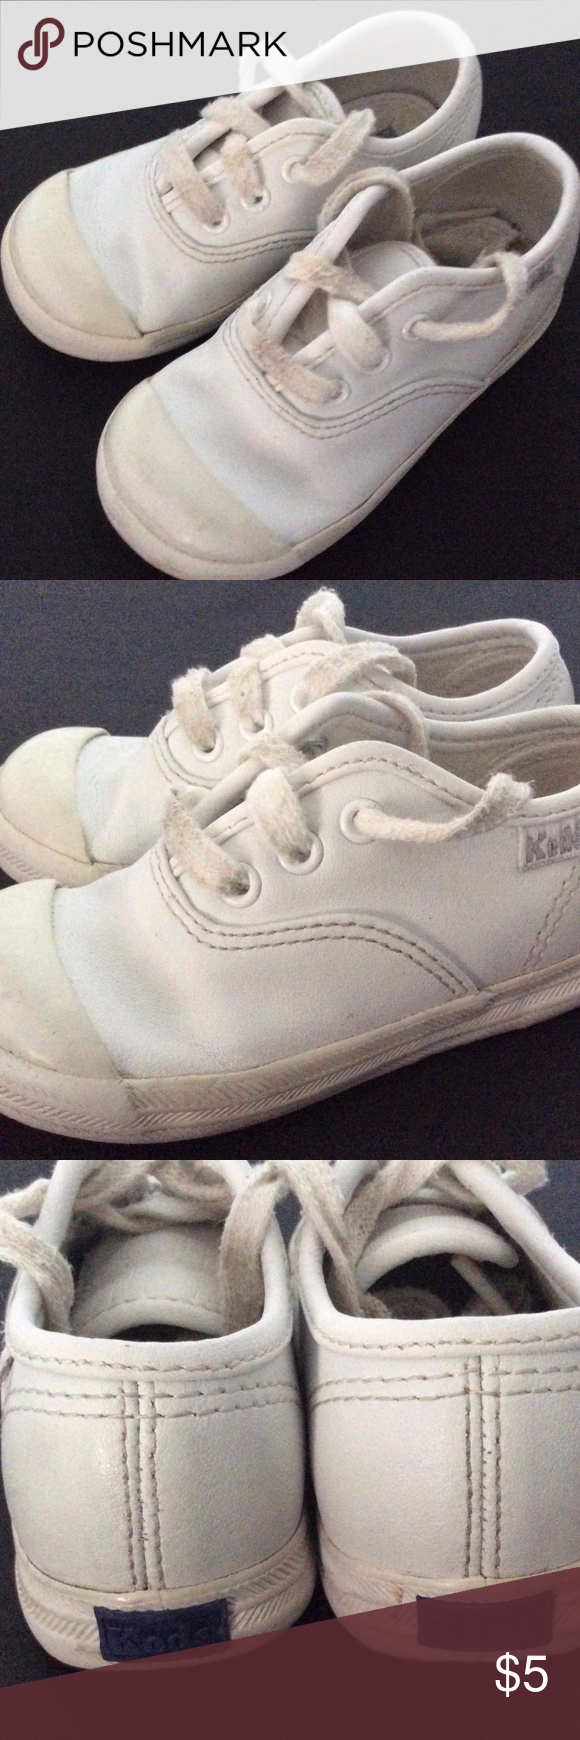 KEDS Girls Size US 6 Wide White Leather